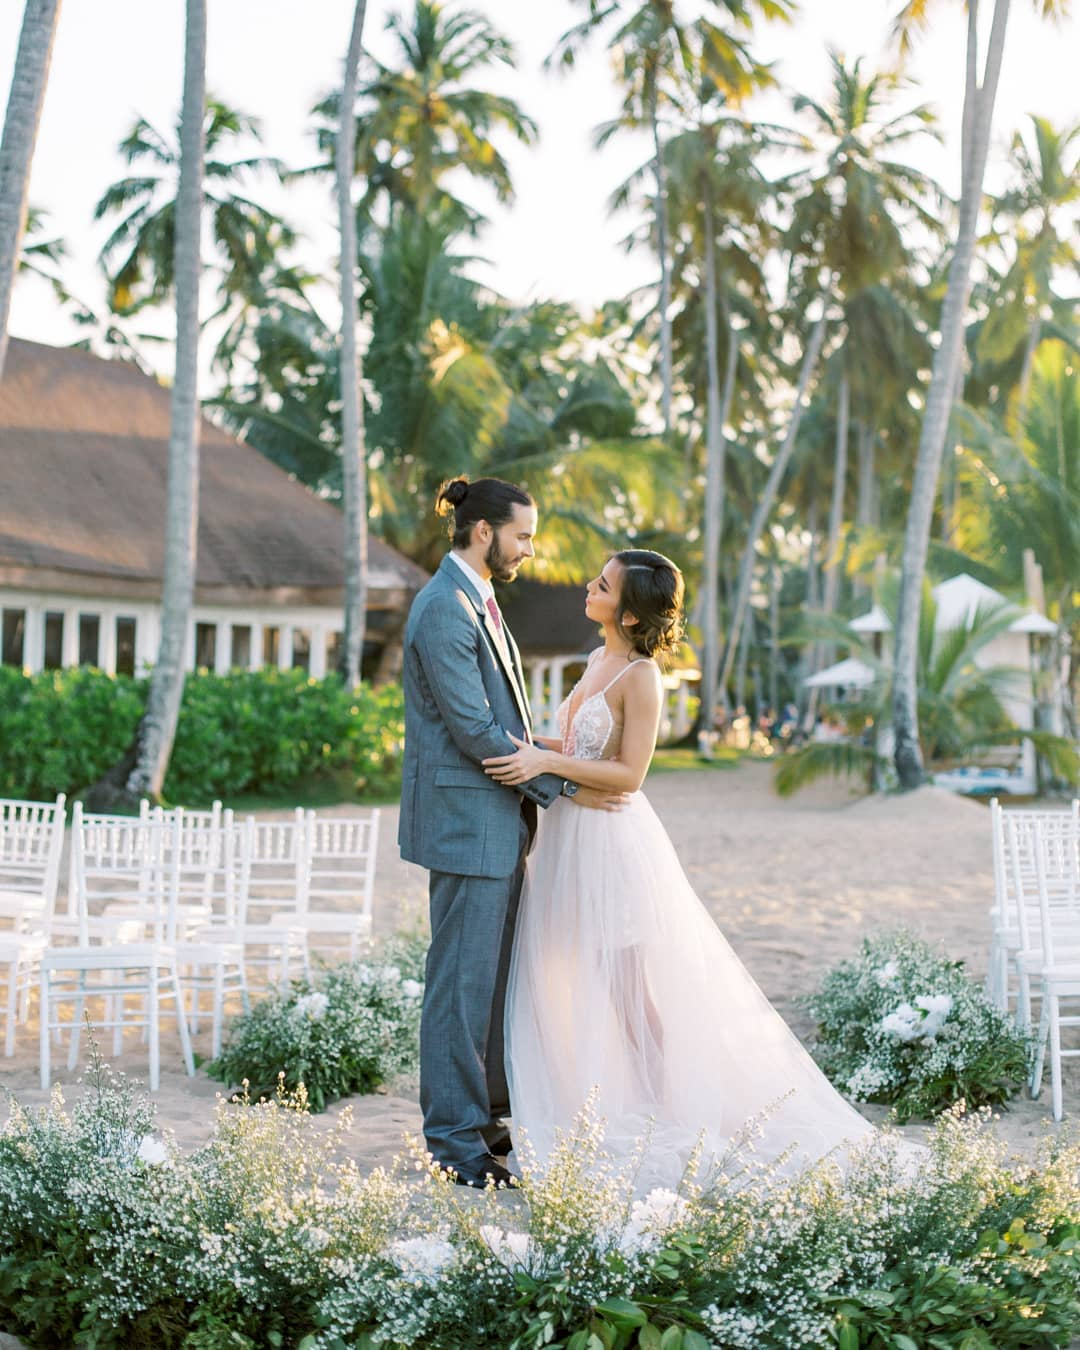 12 Photos To Inspire Your Beach Destination Wedding in the Caribbean & Mexico, Photography by NCH Studio